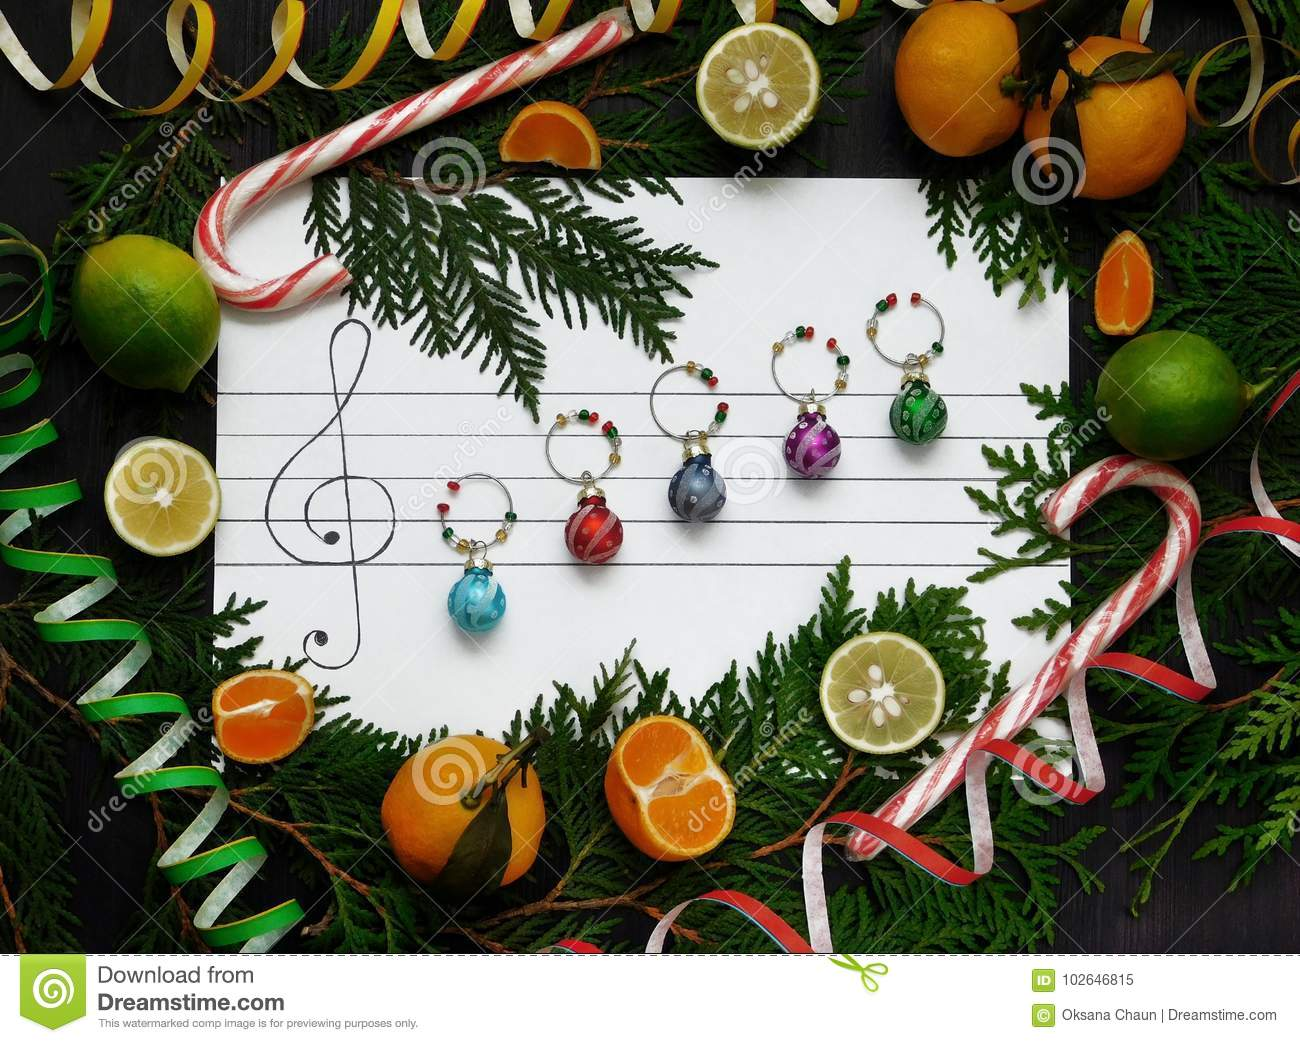 Christmas composition. Christmas decoration balls are arranged on the paper like music notes